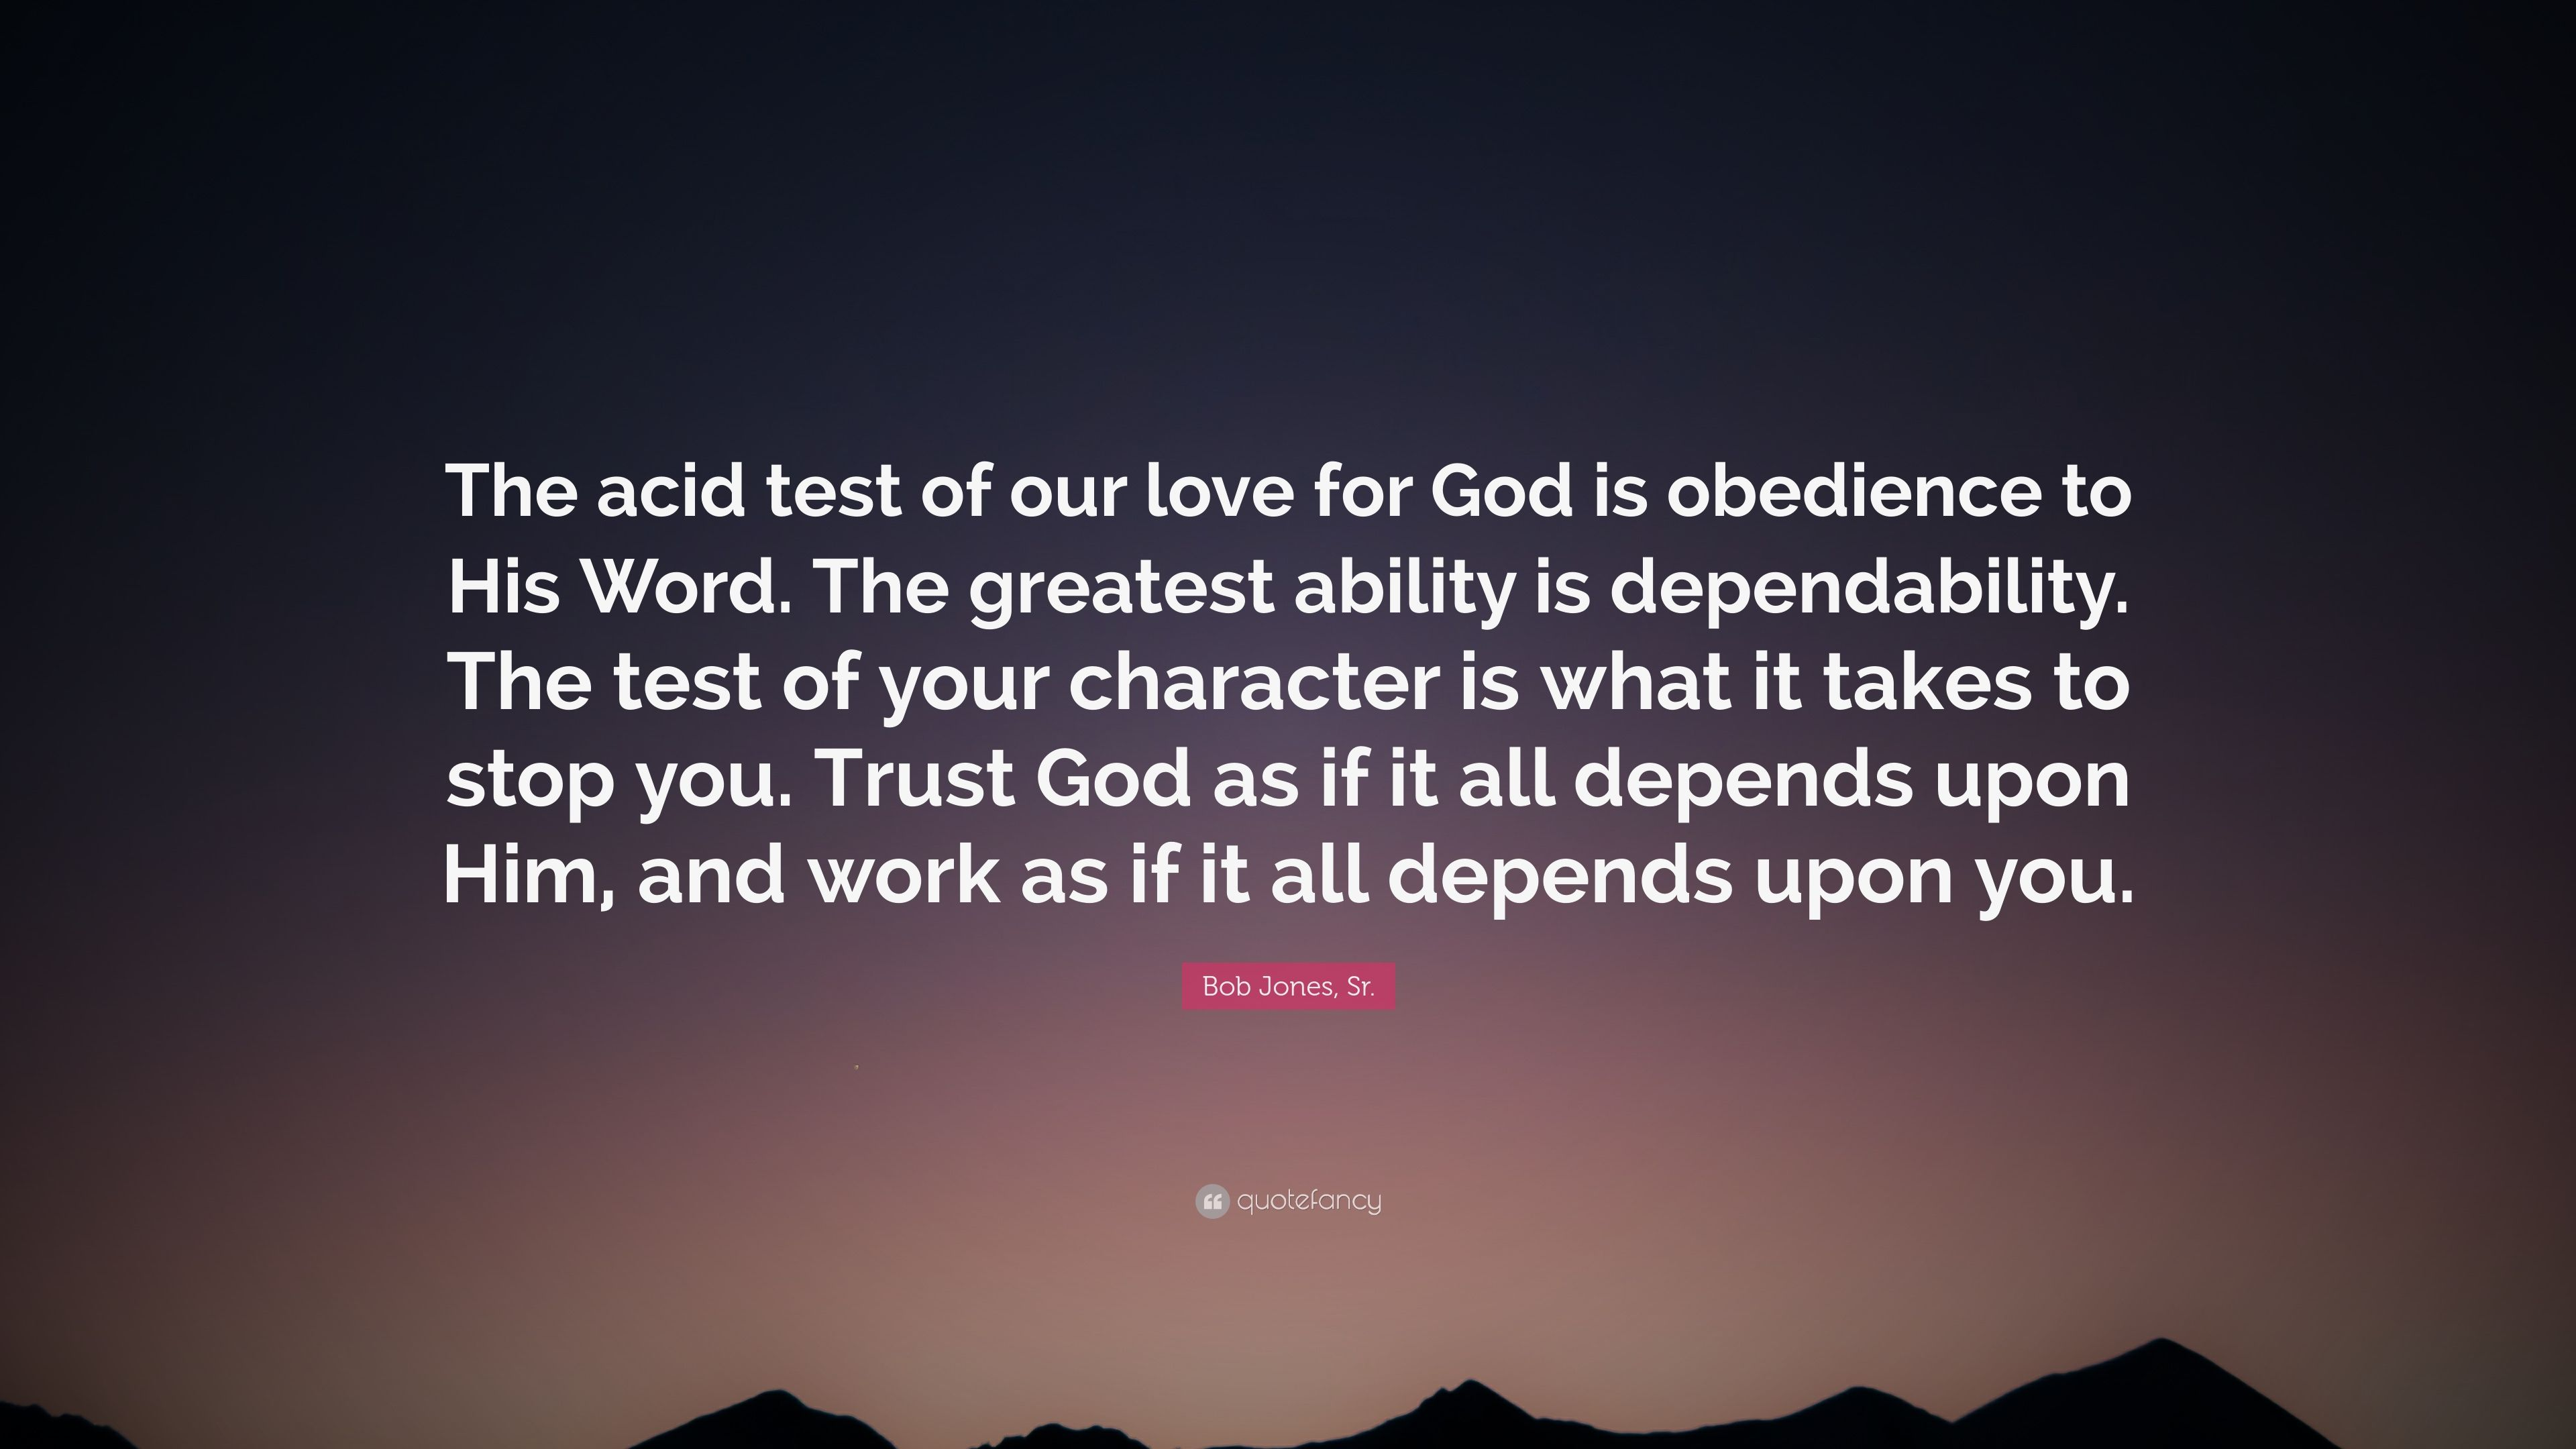 Word Of God Quotes Wallpaper Bob Jones Sr Quote The Acid Test Of Our Love For God